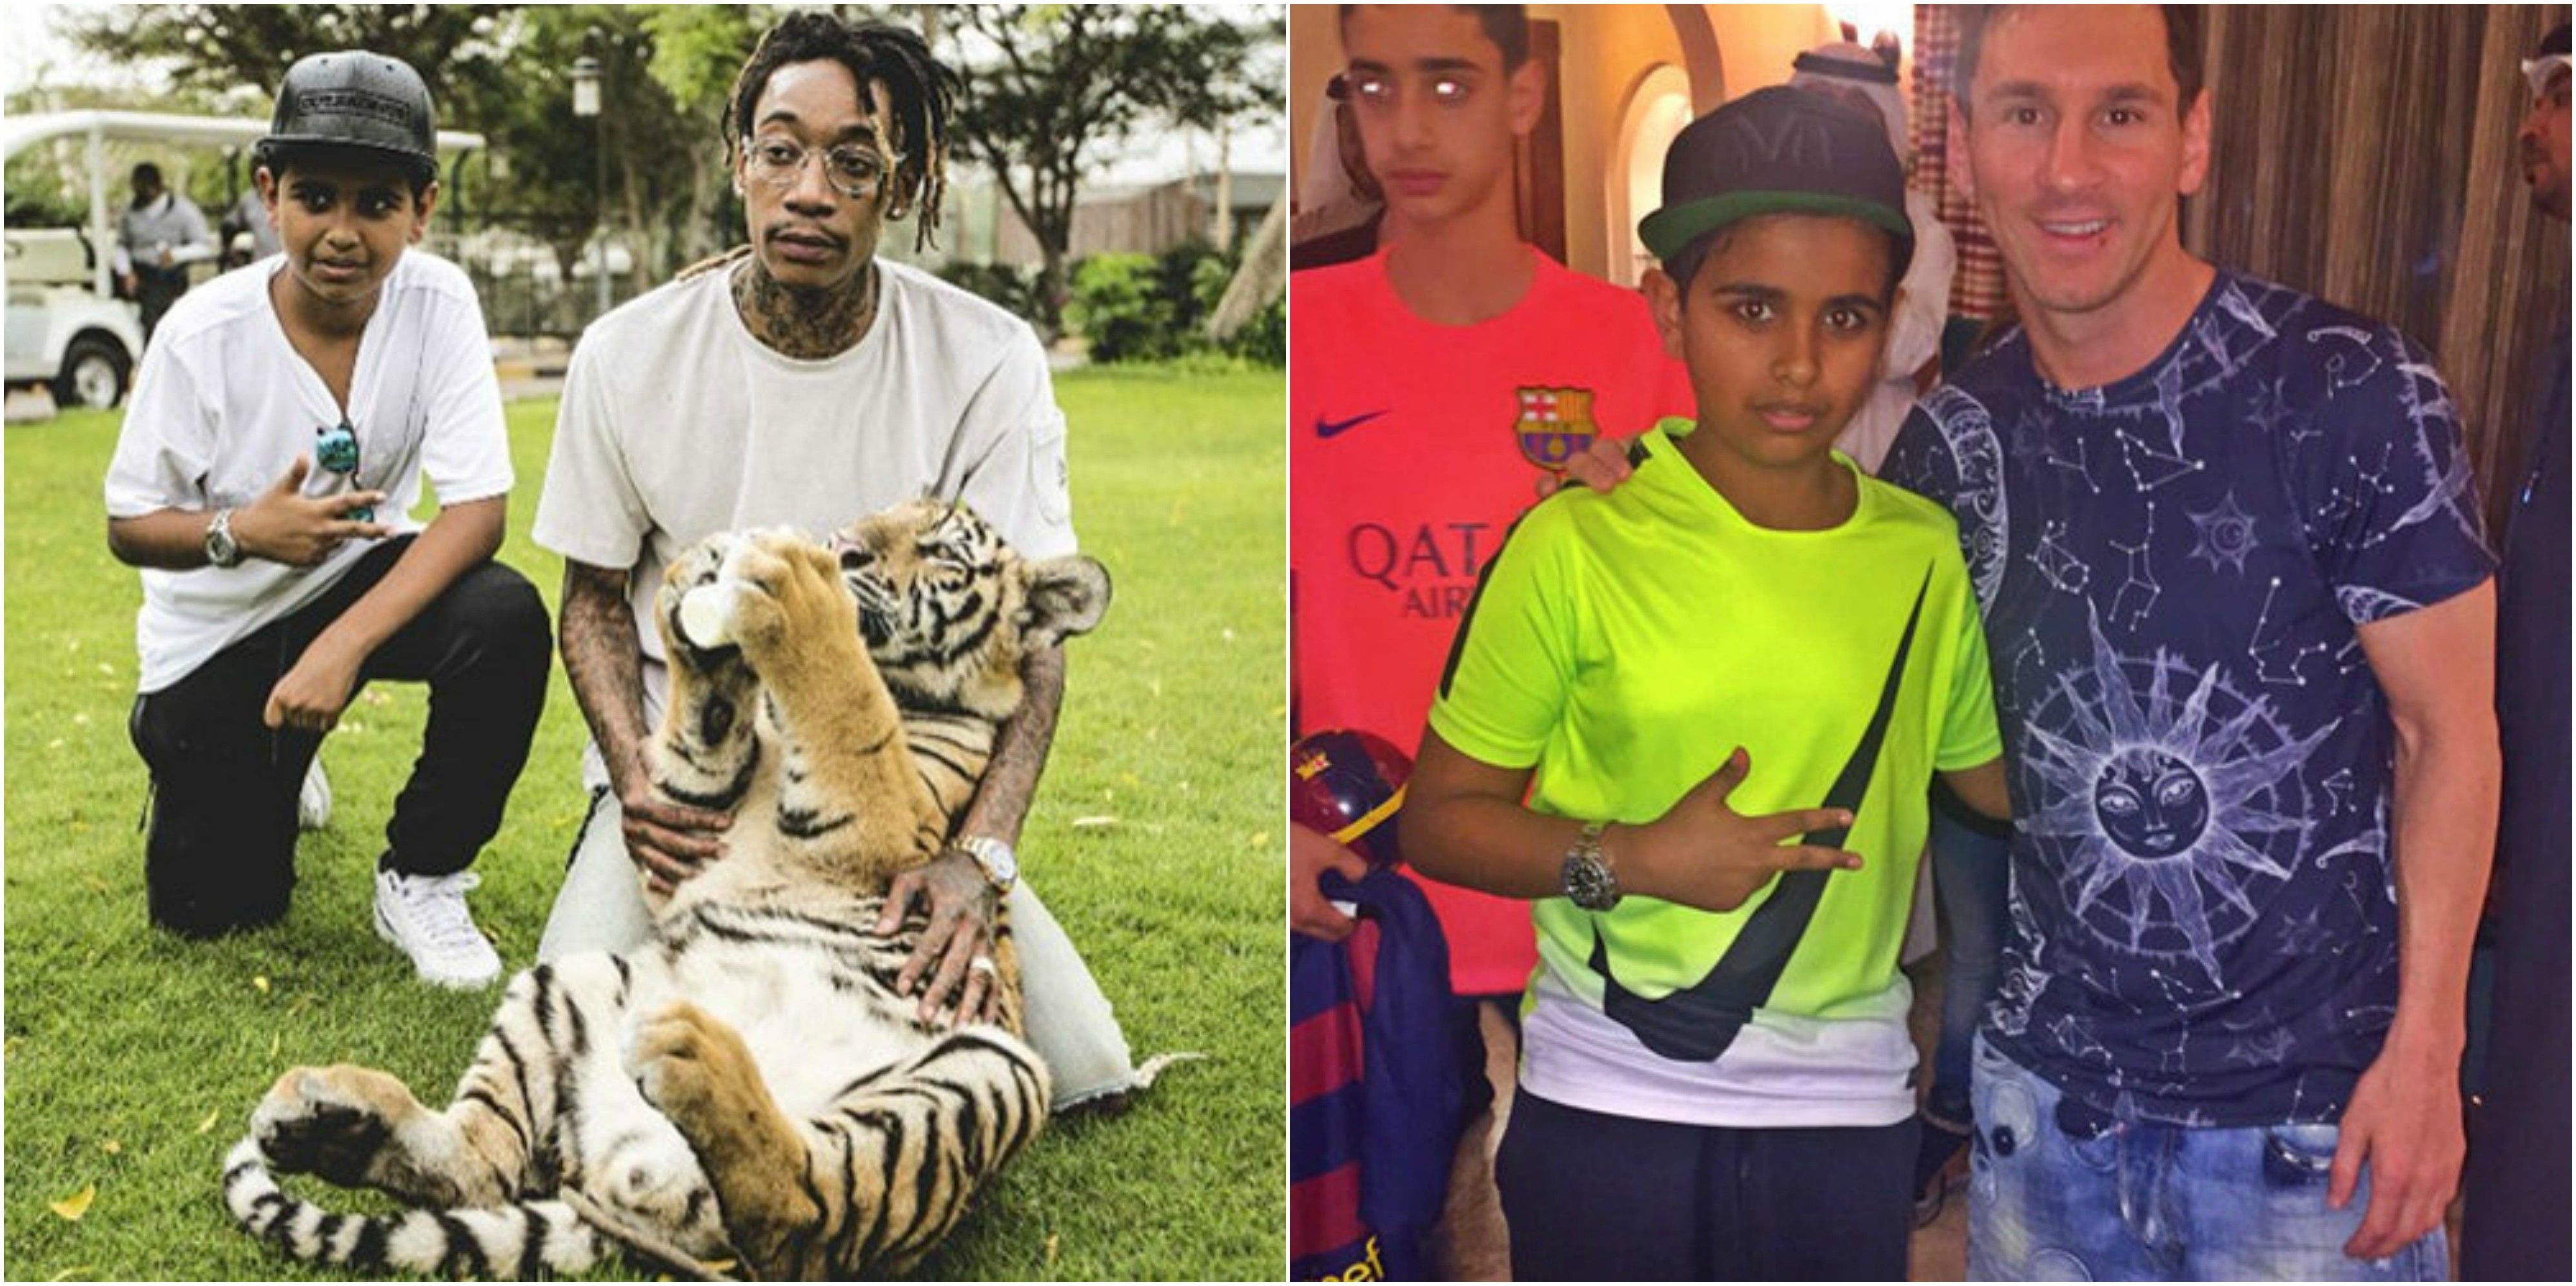 Richest Kid In Dubai >> 20 Dubai Rich Kids Who Think They Are Humble But Aren T Really